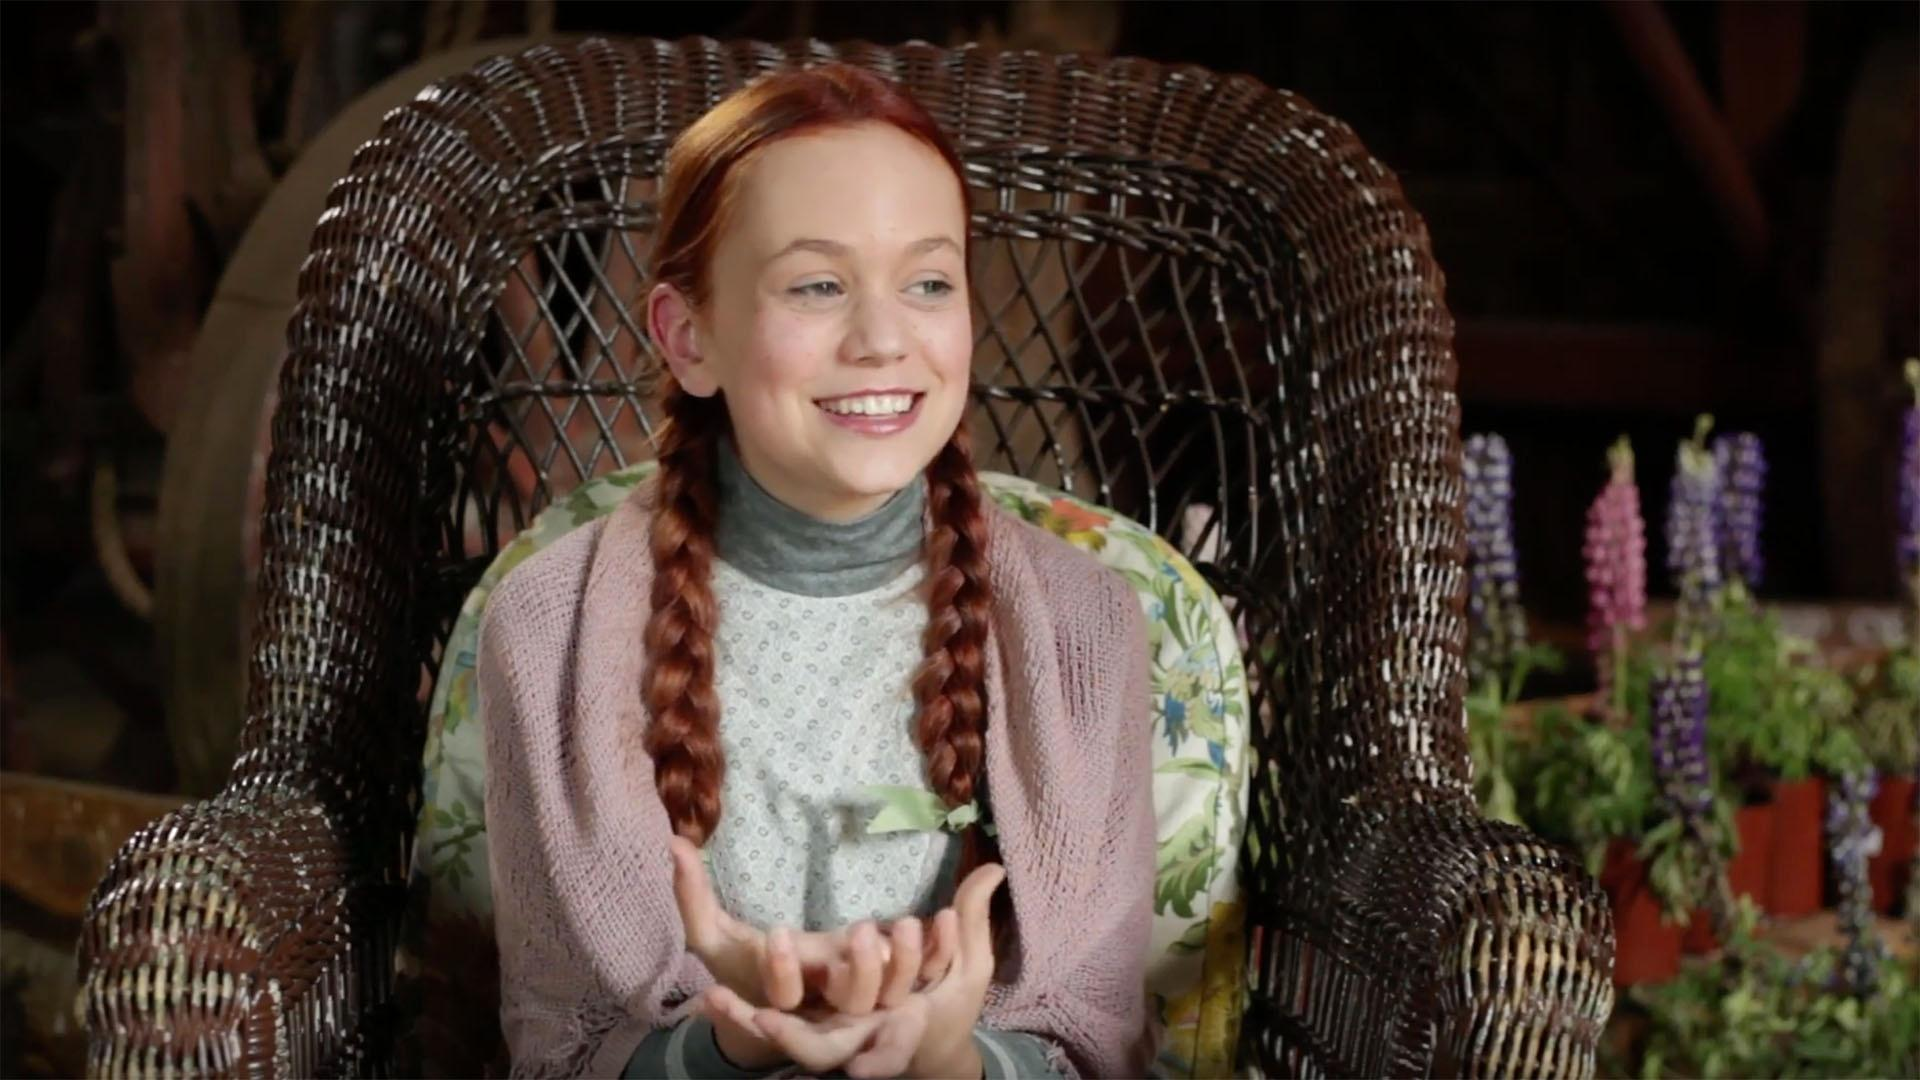 a review of characters in anne of green gables a novel by lucy maud montgomery 6 days ago  anne of green gables by lucy maud montgomery  shirley arrives at the snug  white farmhouse called green gables, she  editorial reviews.